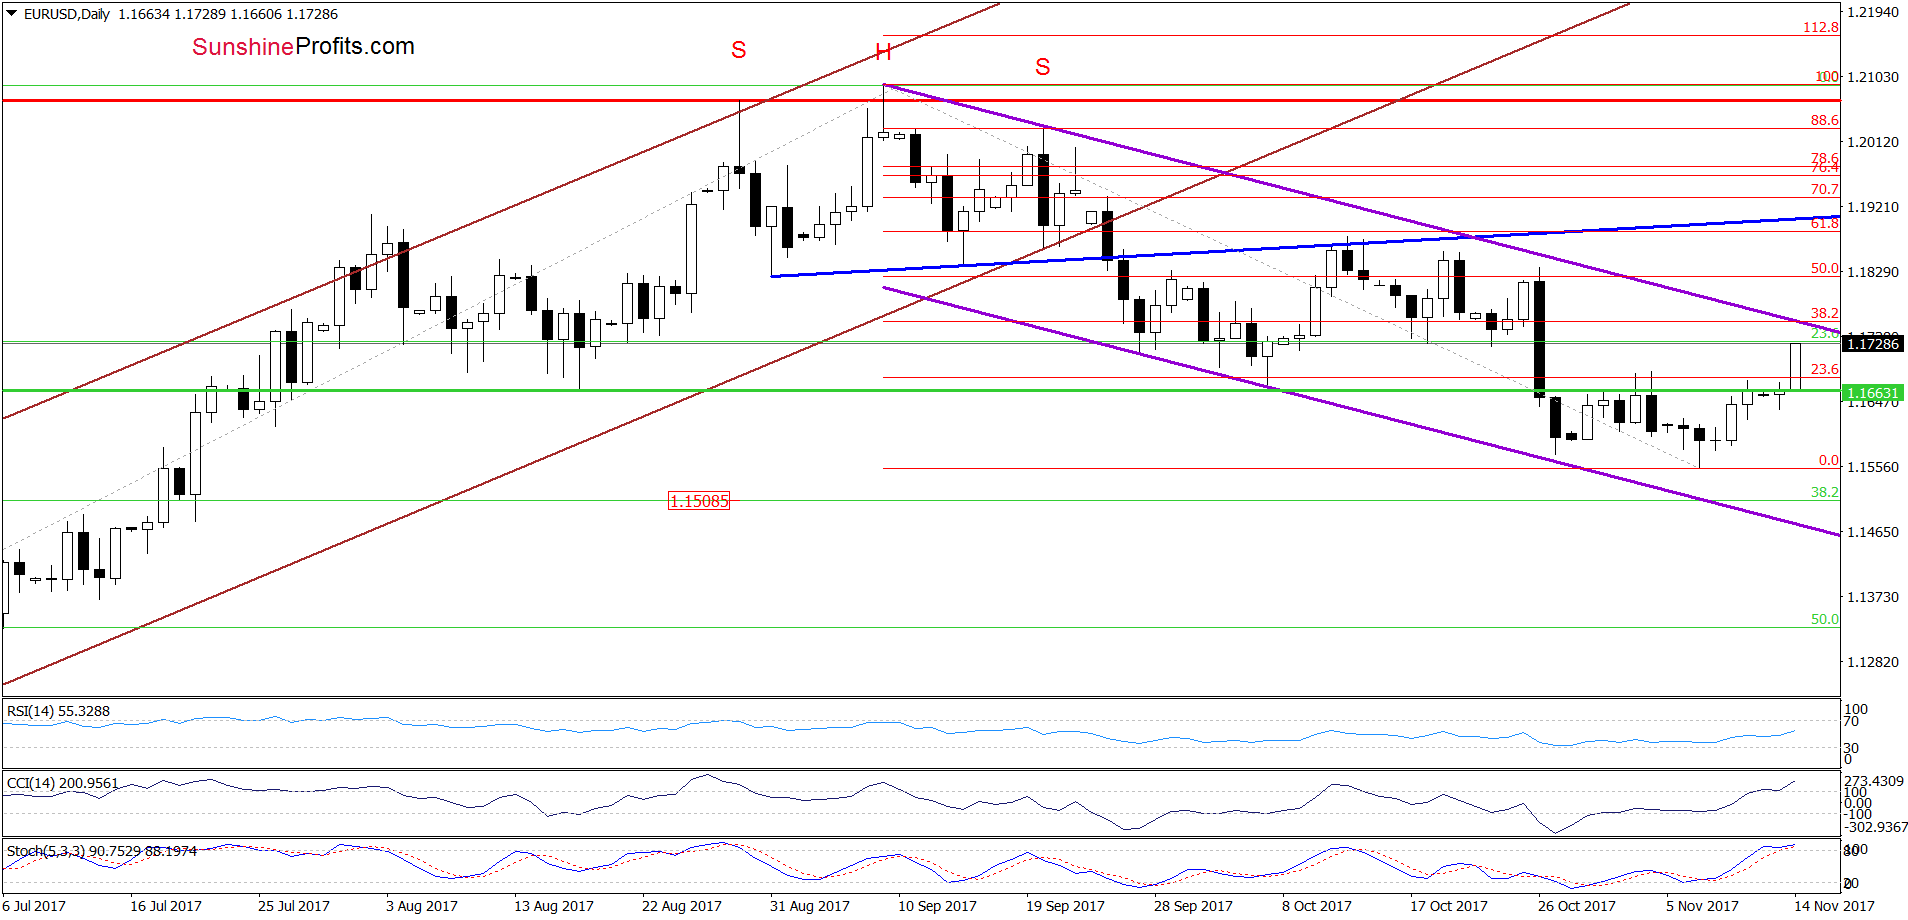 EUR/USD - the daily chart